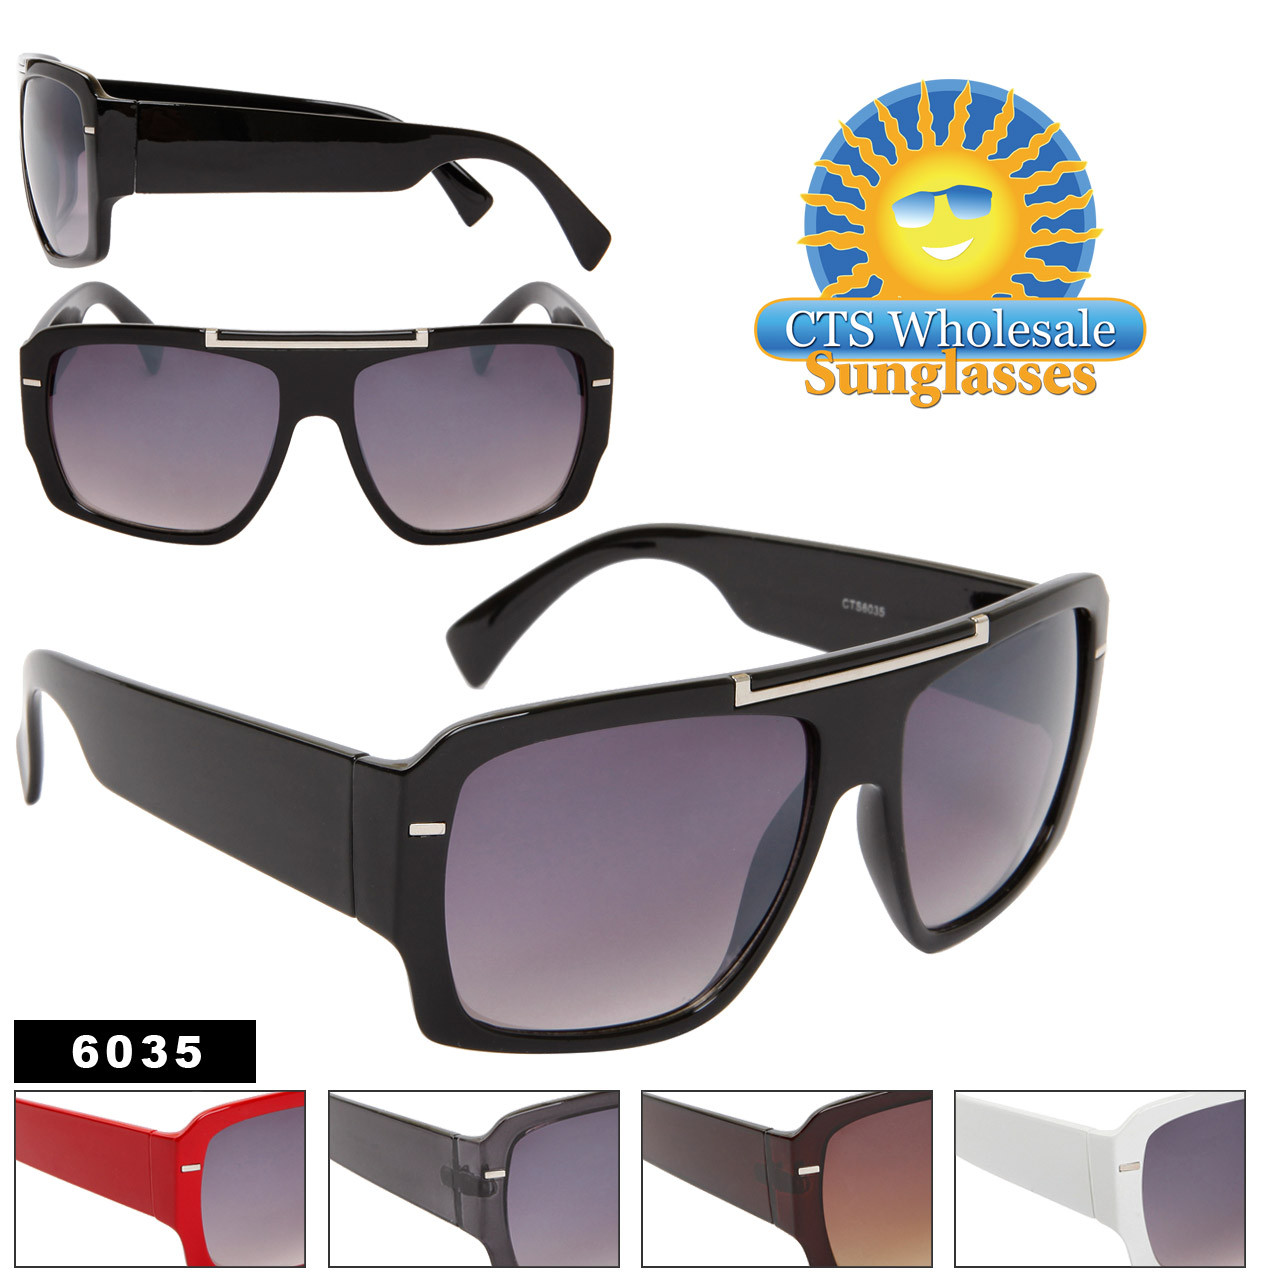 Square Aviator Sunglasses 6035